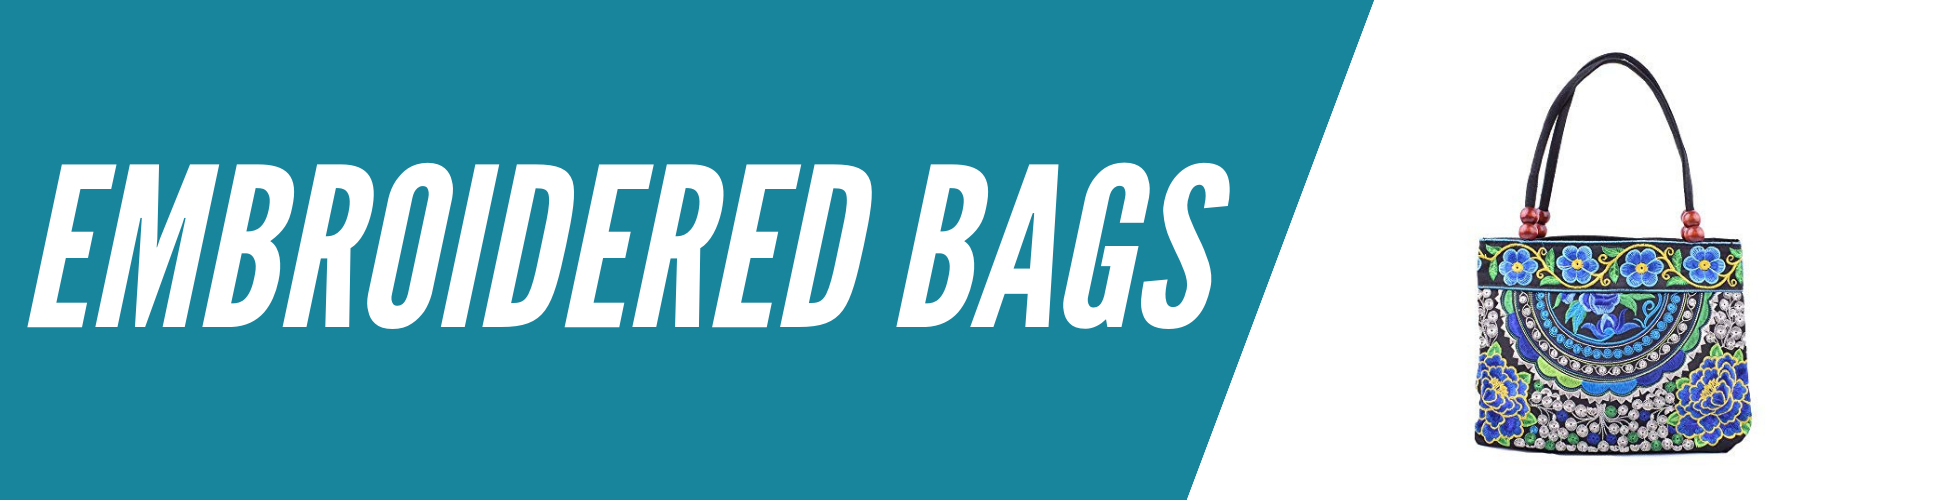 embroidered-bags-banner.png